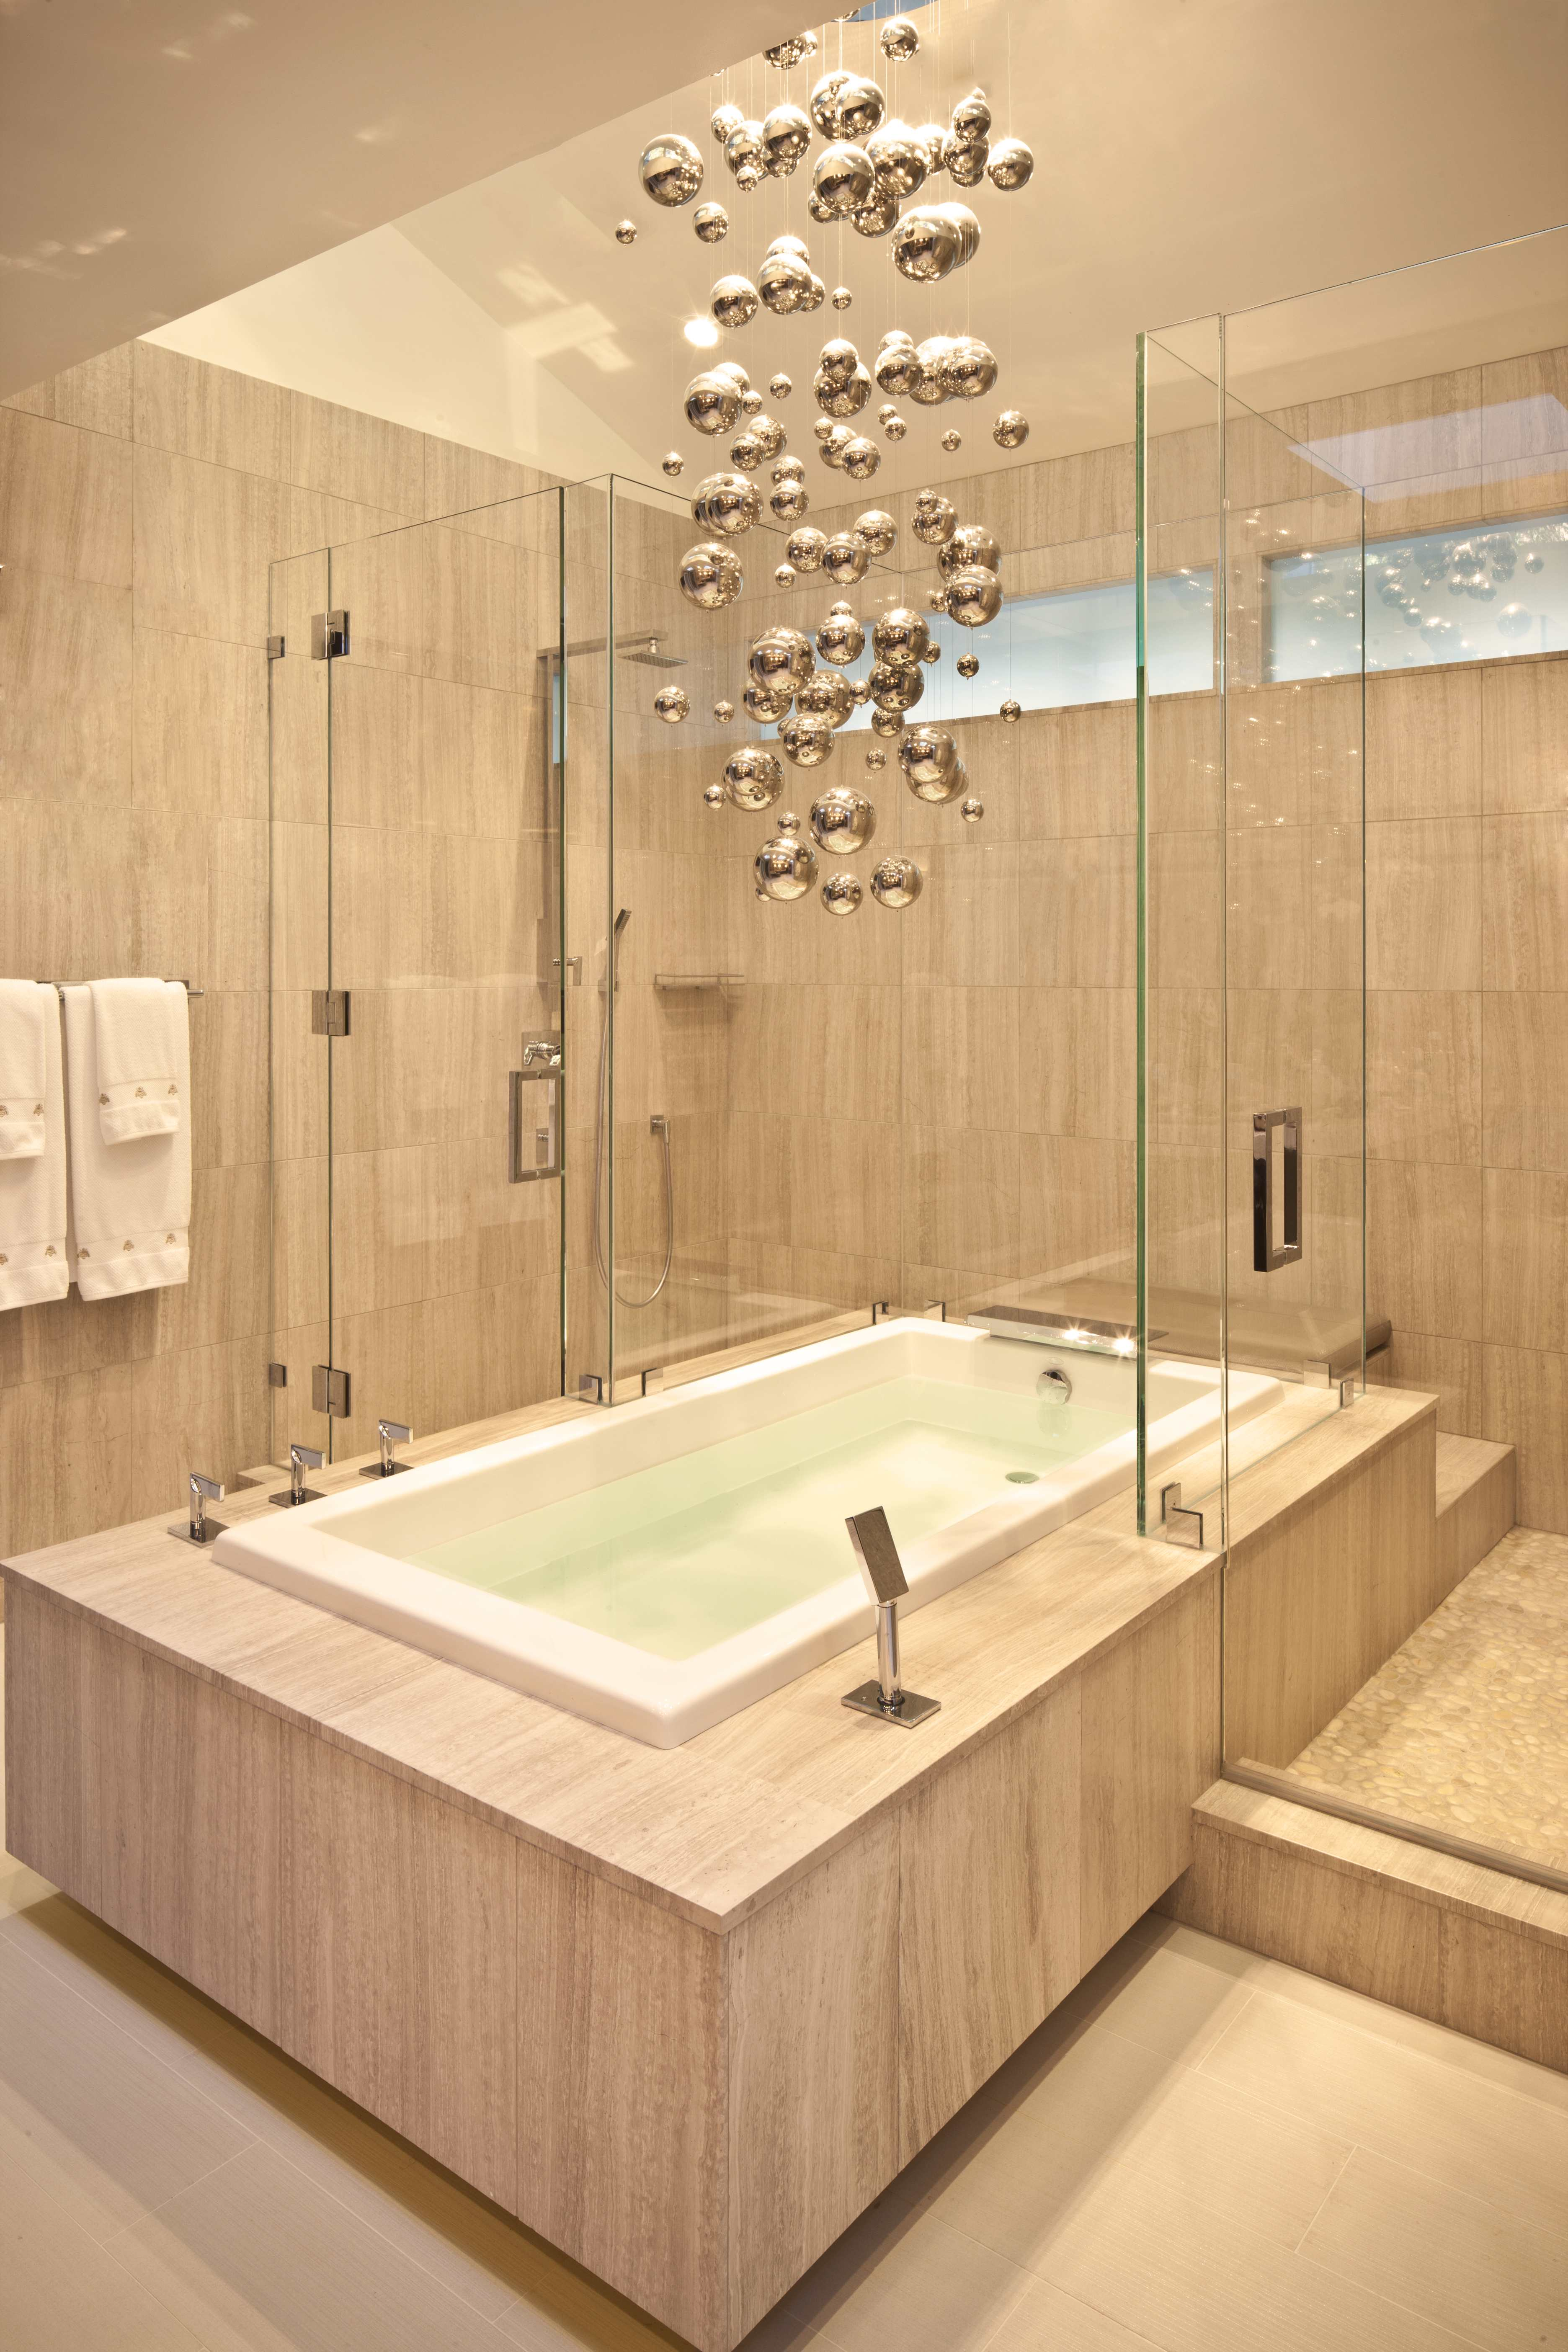 Lighting design ideas to decorate bathrooms lighting stores for Bathroom ideas with tub